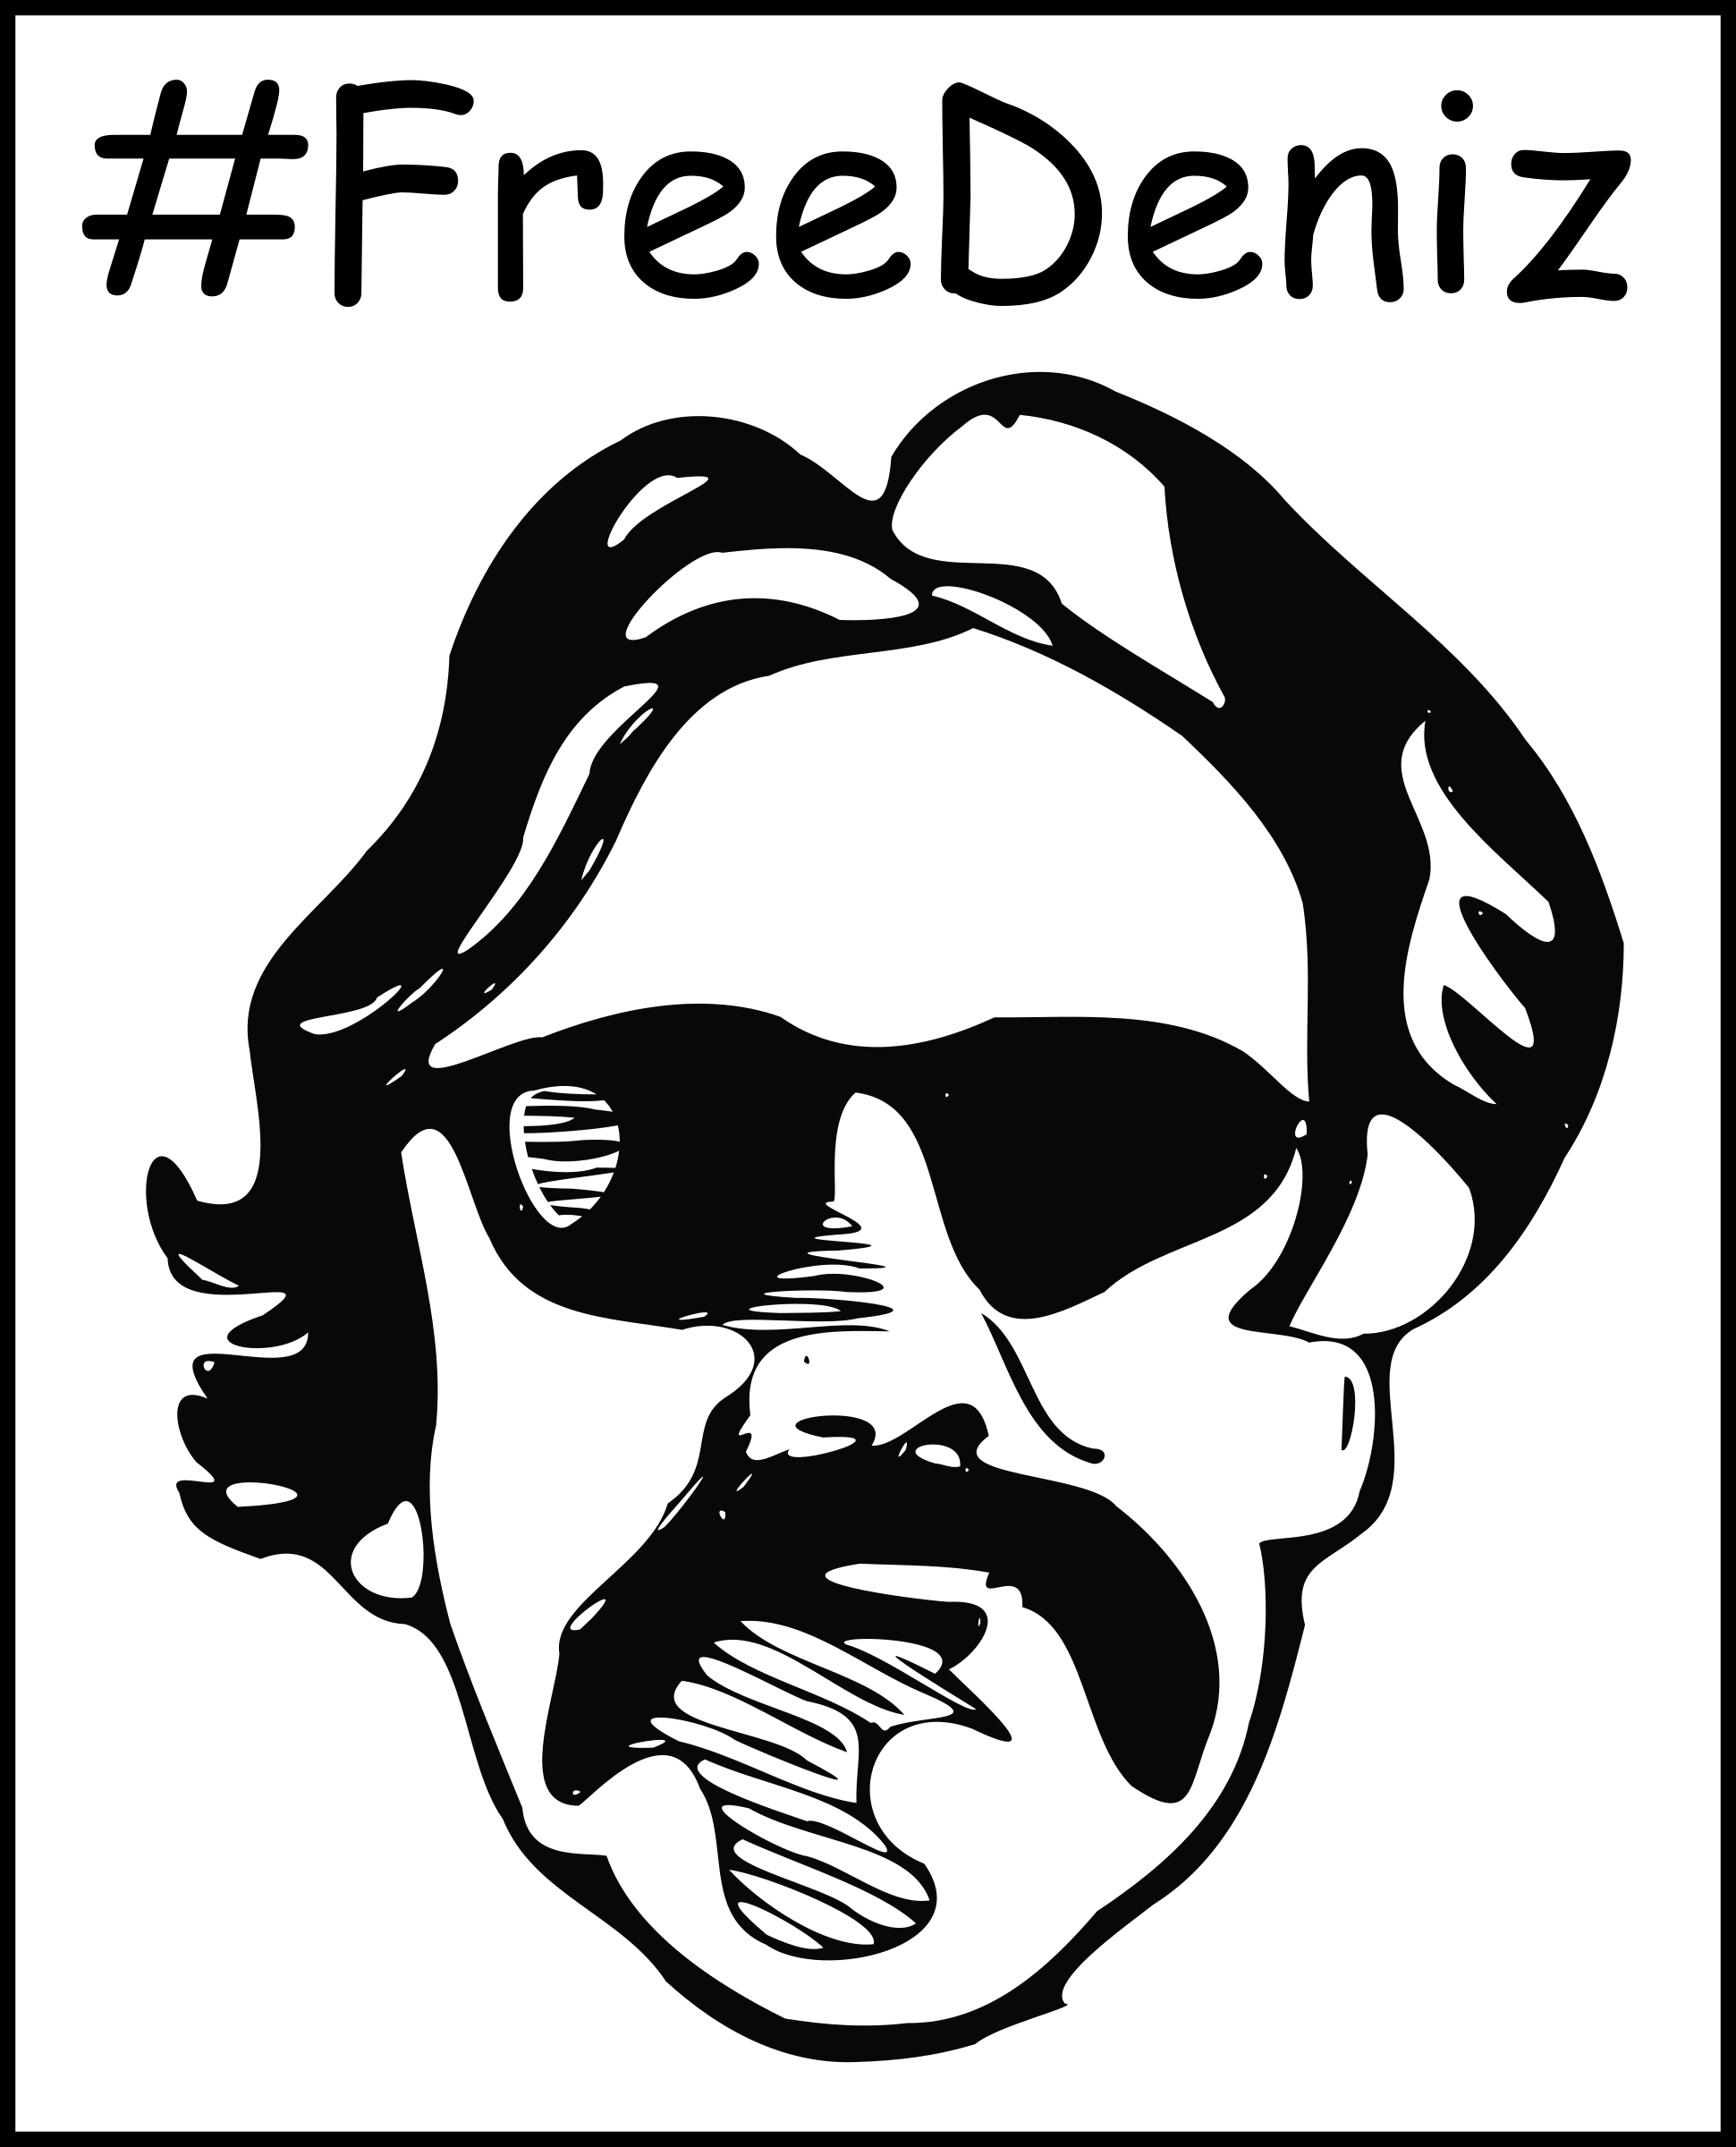 FreeDeniz by user unknown